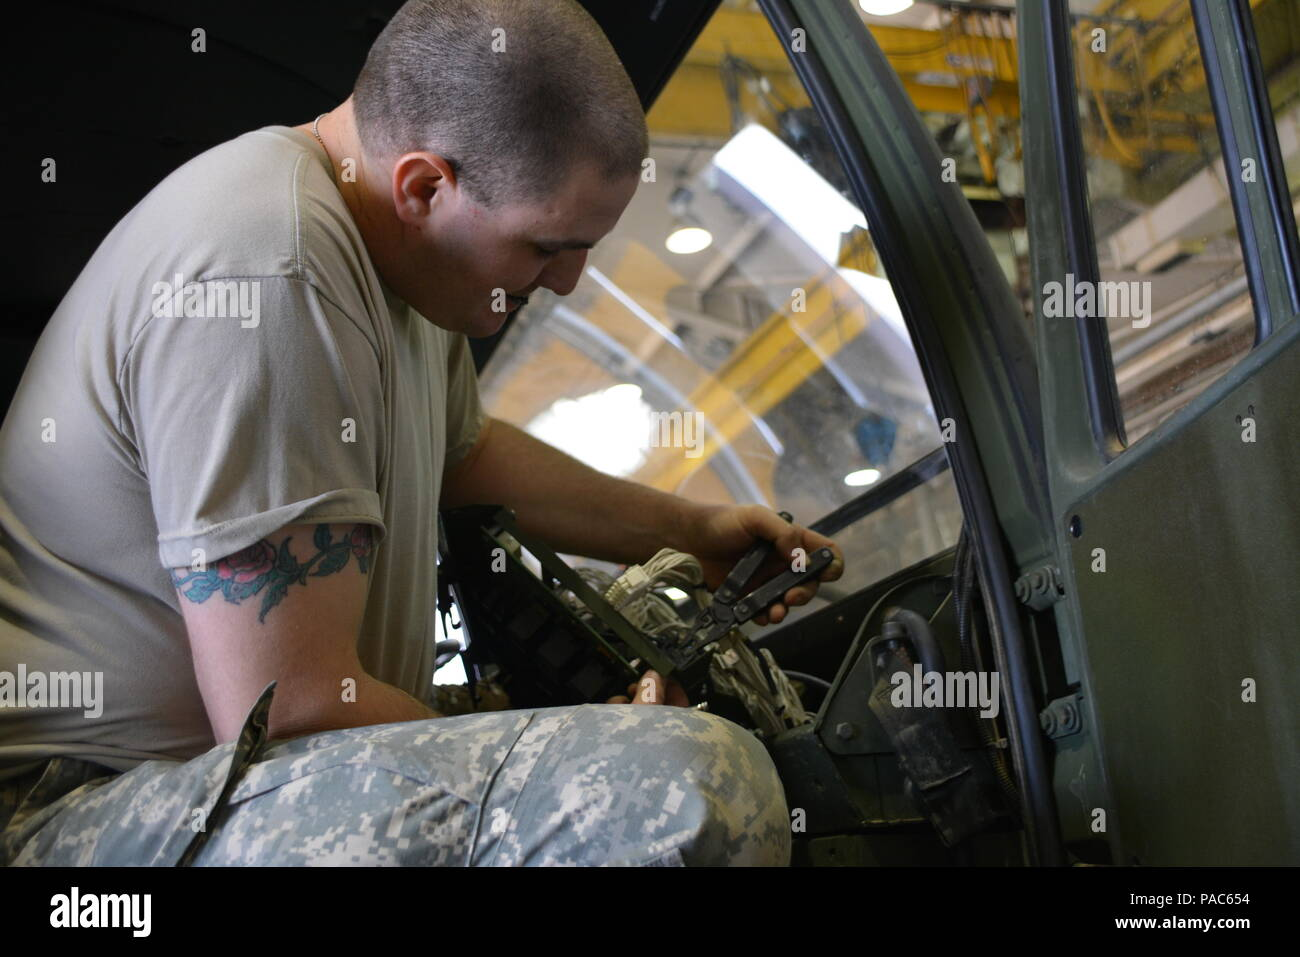 Wiring Harness Stock Photos Images Alamy Design Jobs In Germany Sgt Jacob Rankin Squad Leader 520th Supply Maintenance Company Prepares To Replace